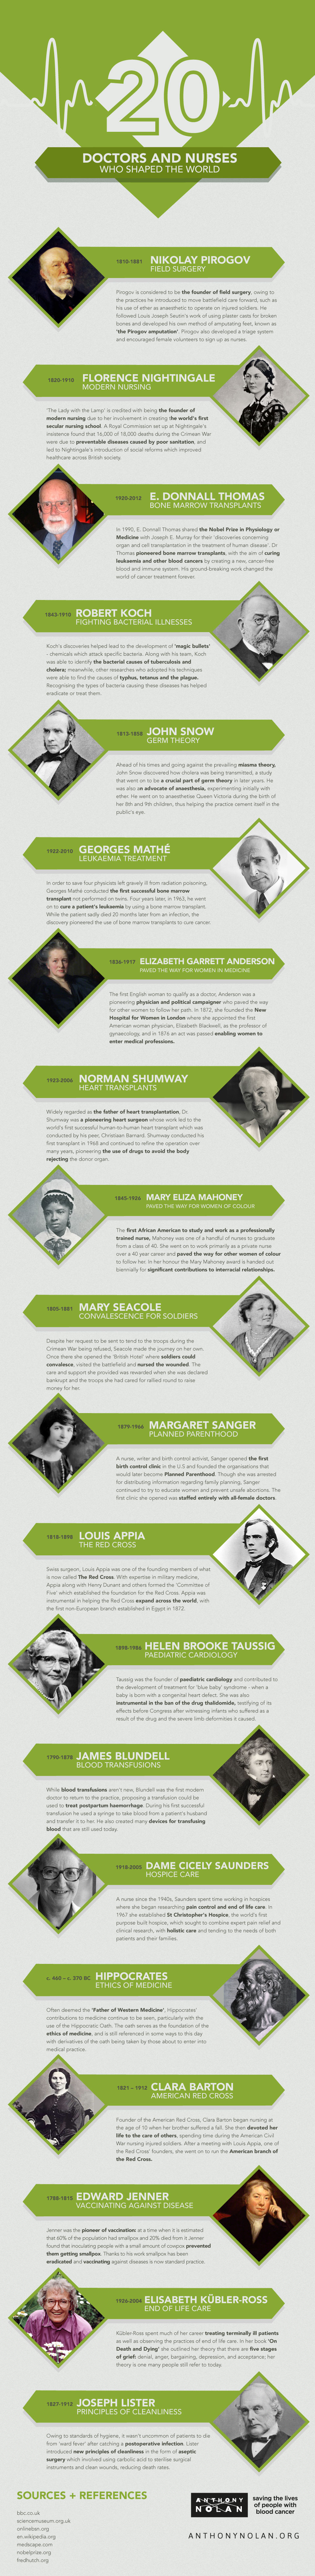 20 Doctors And Nurses Who Shaped The World